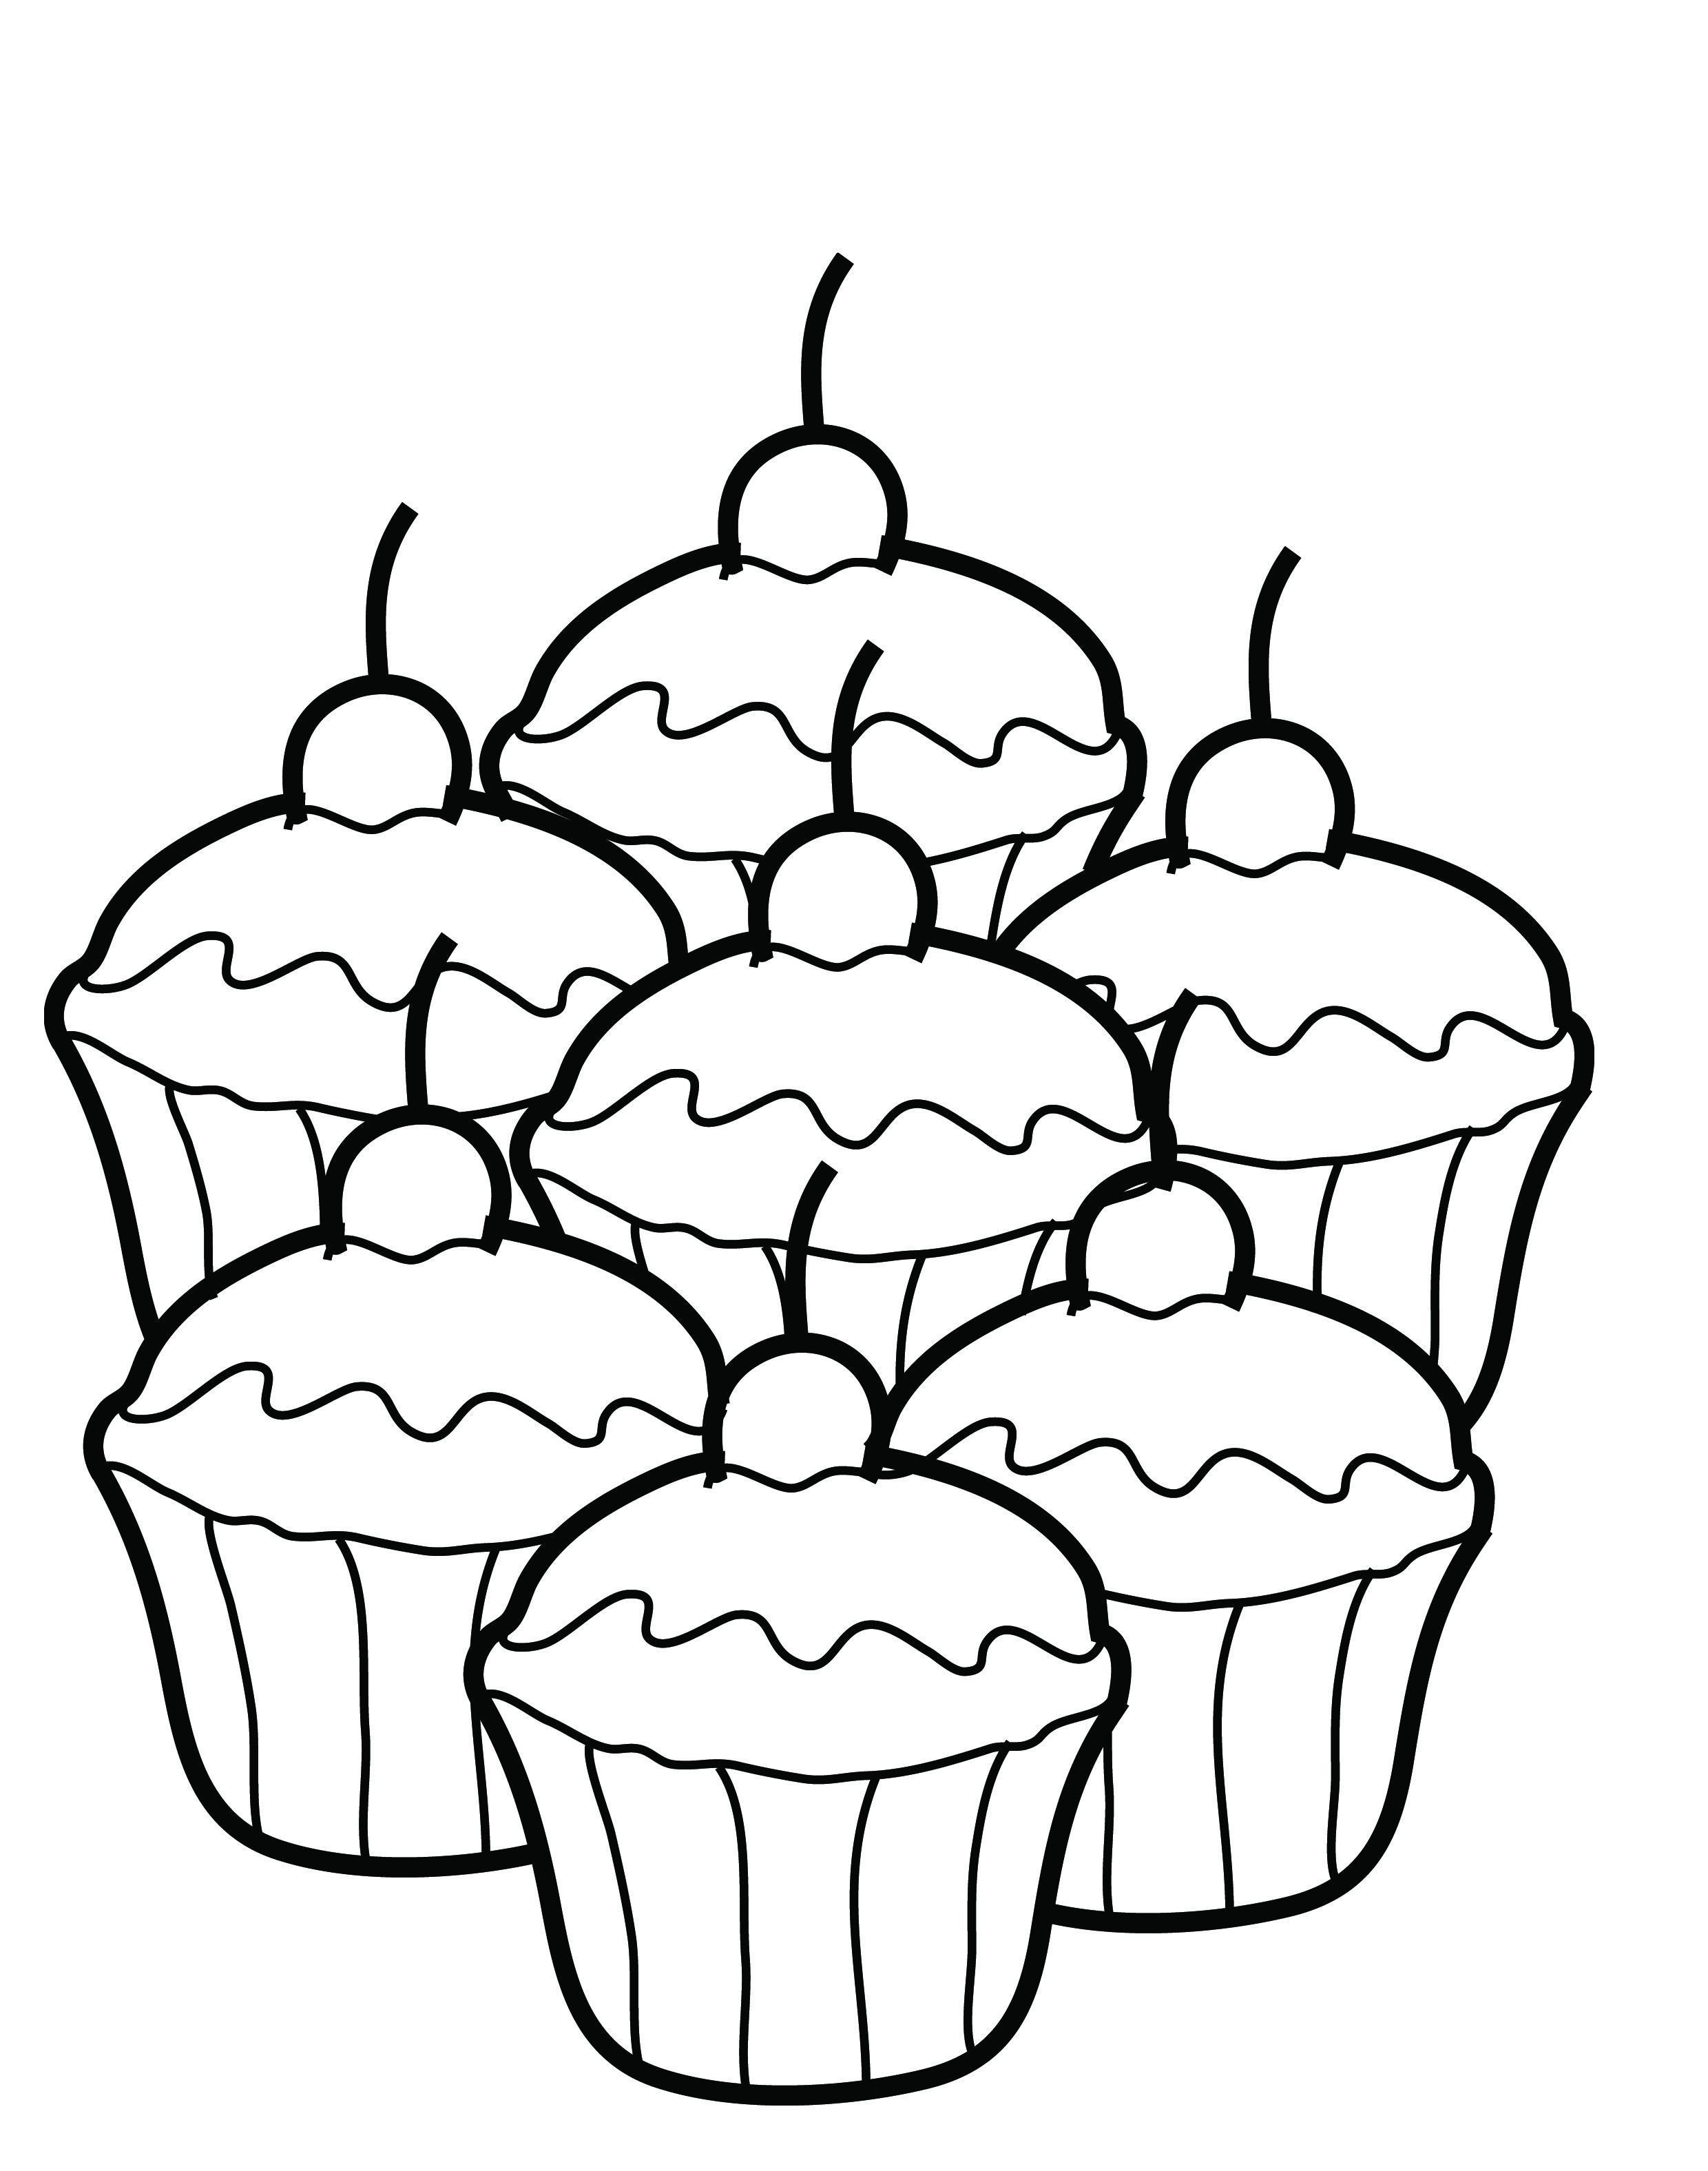 cupcake coloring pages for kids - Kids Colouring Pages To Print